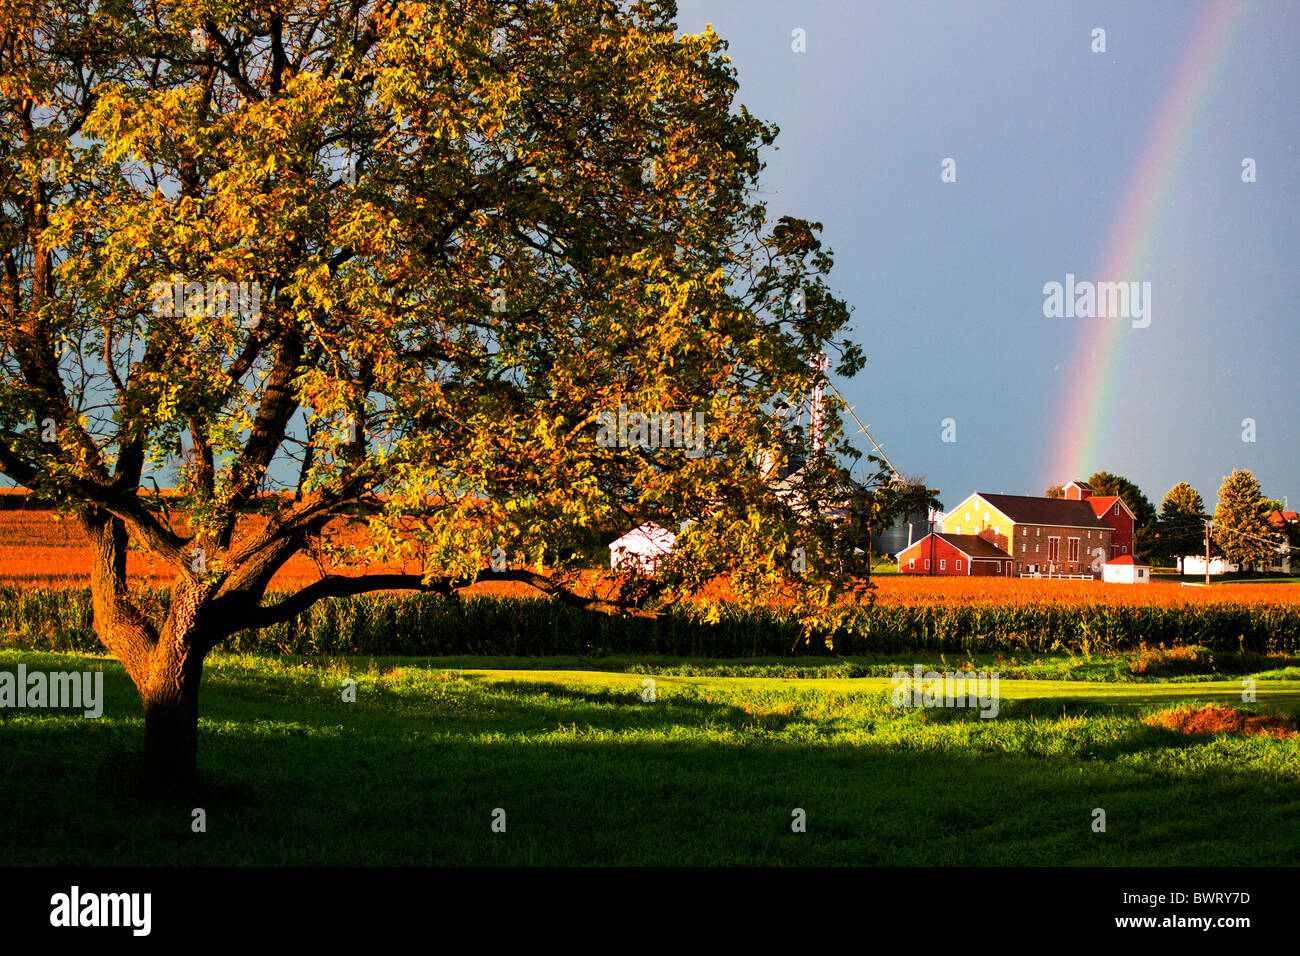 A double rainbow has formed over a farm on the prairie of Illinois. - Stock Image